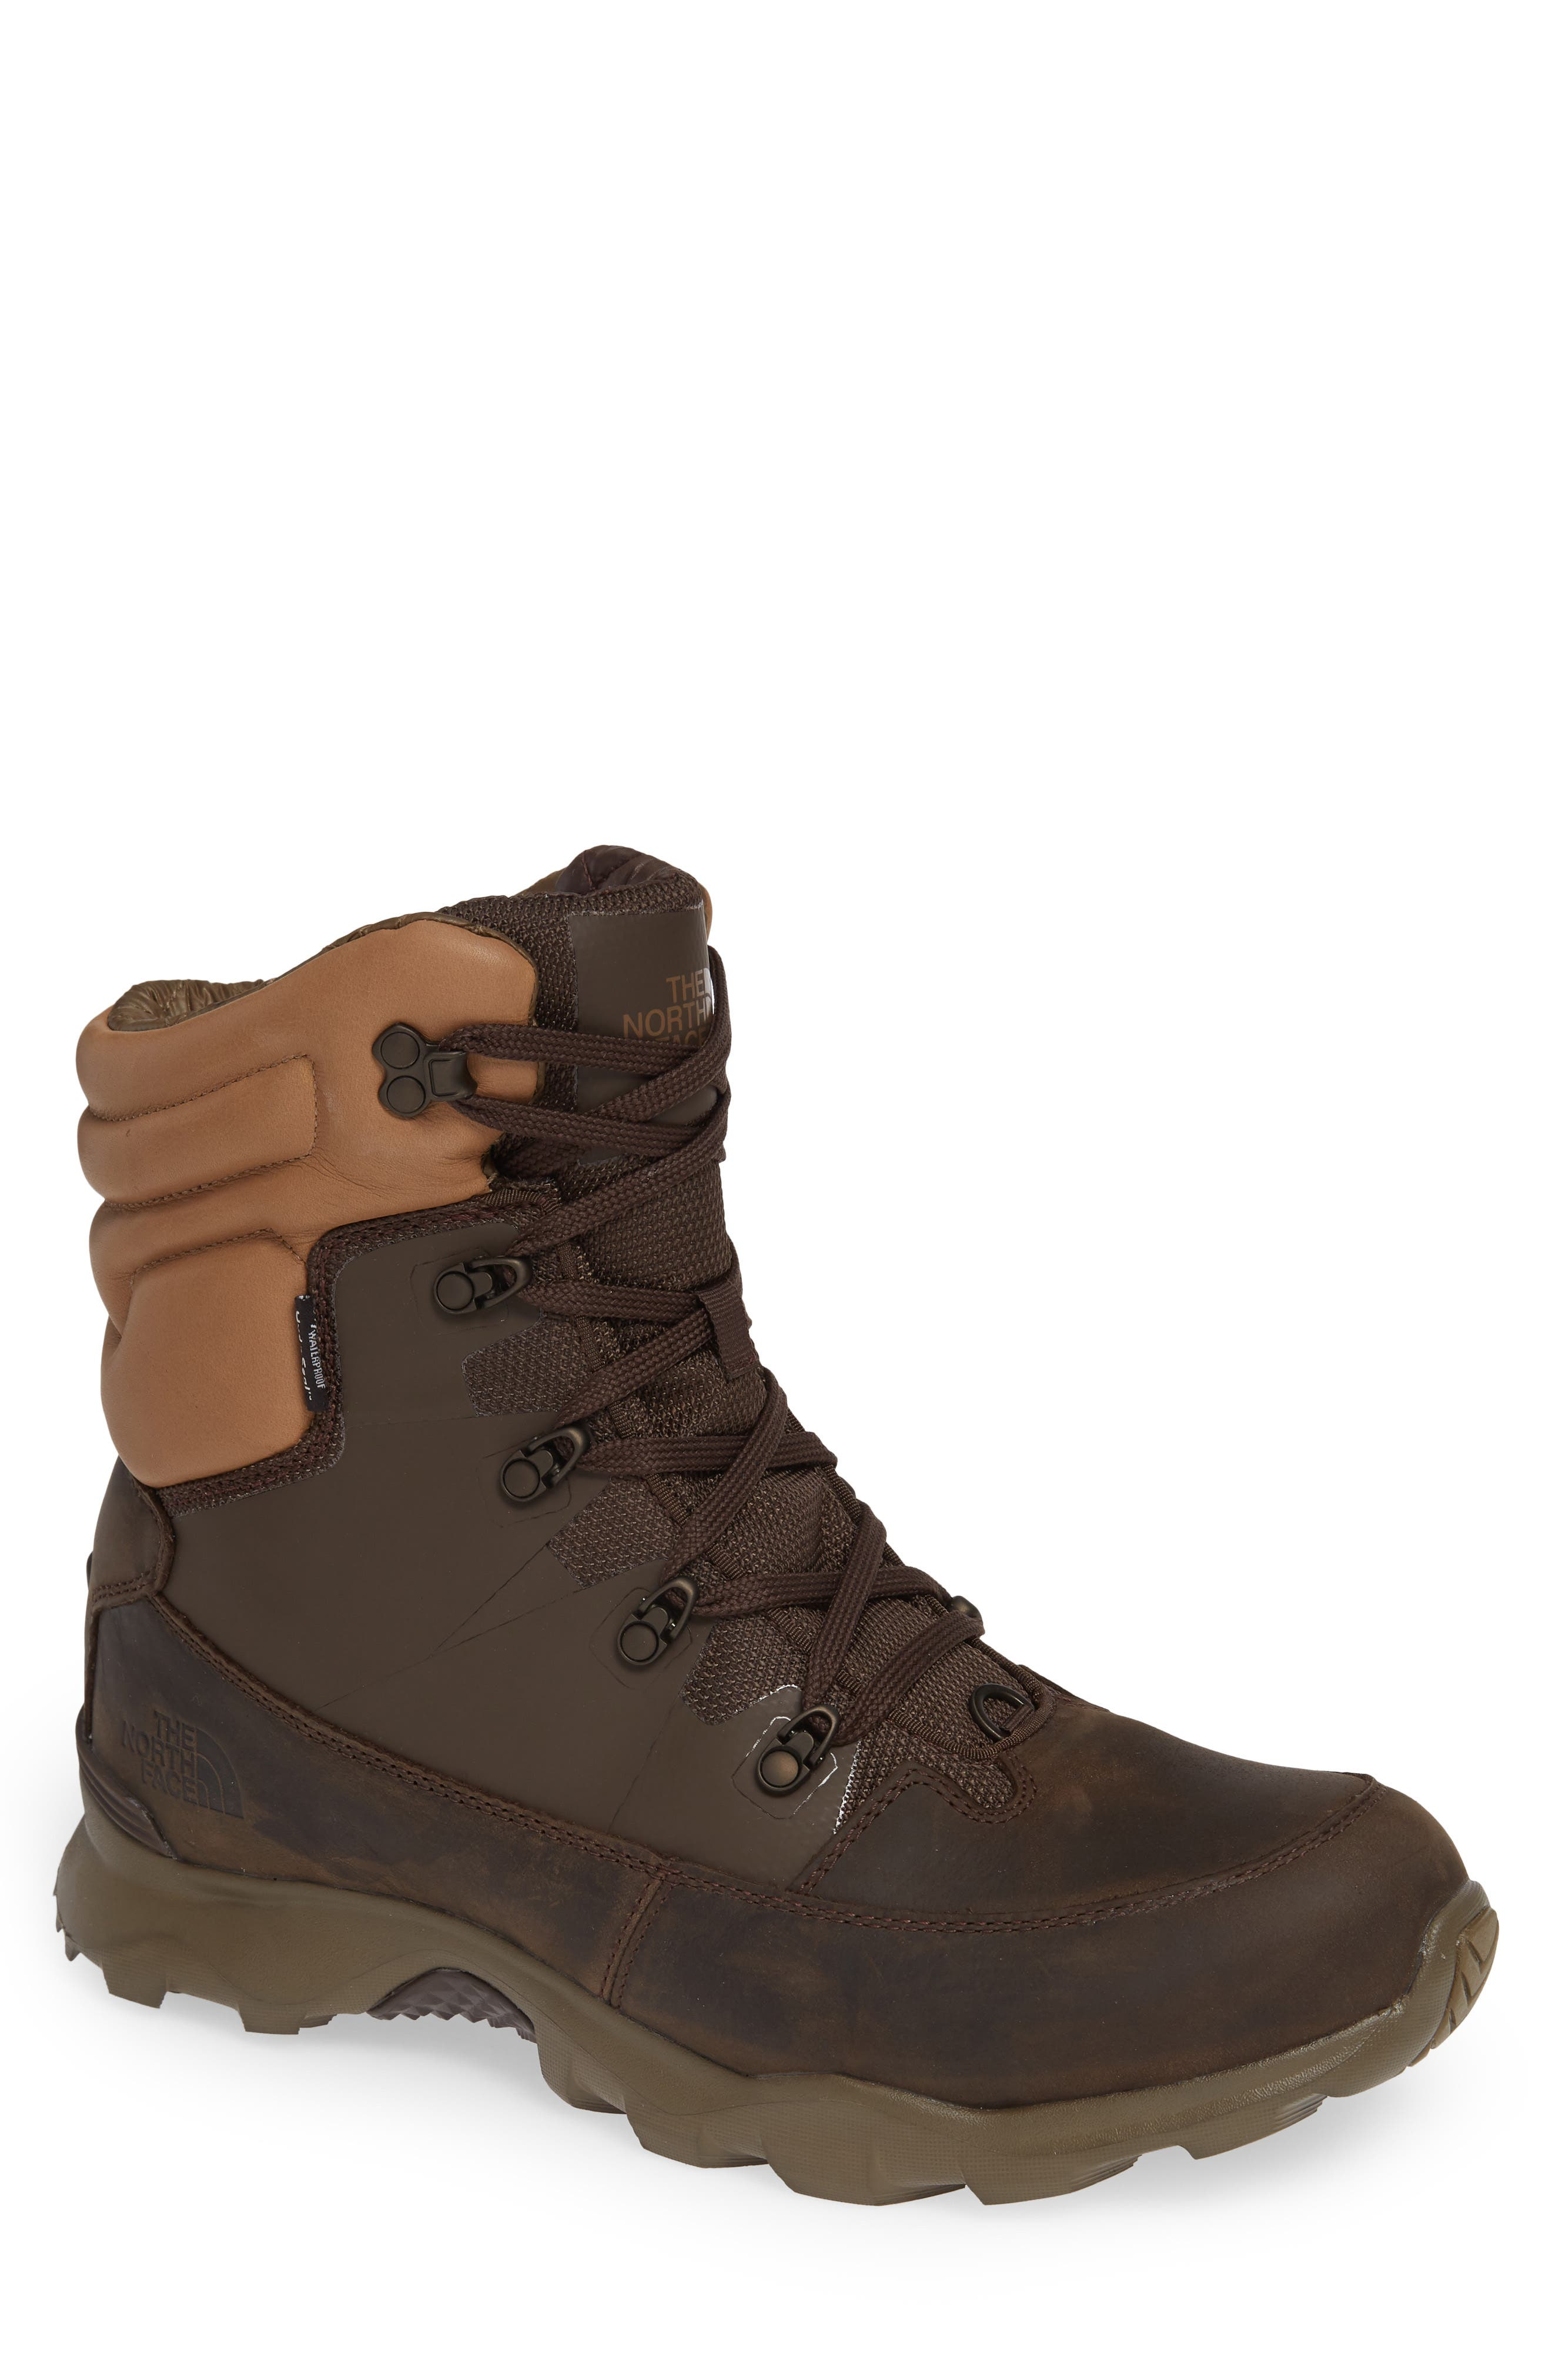 THE NORTH FACE,                             ThermoBall Lifty Snow Waterproof Boot,                             Main thumbnail 1, color,                             CHOCOLATE BROWN/ CARGO KHAKI